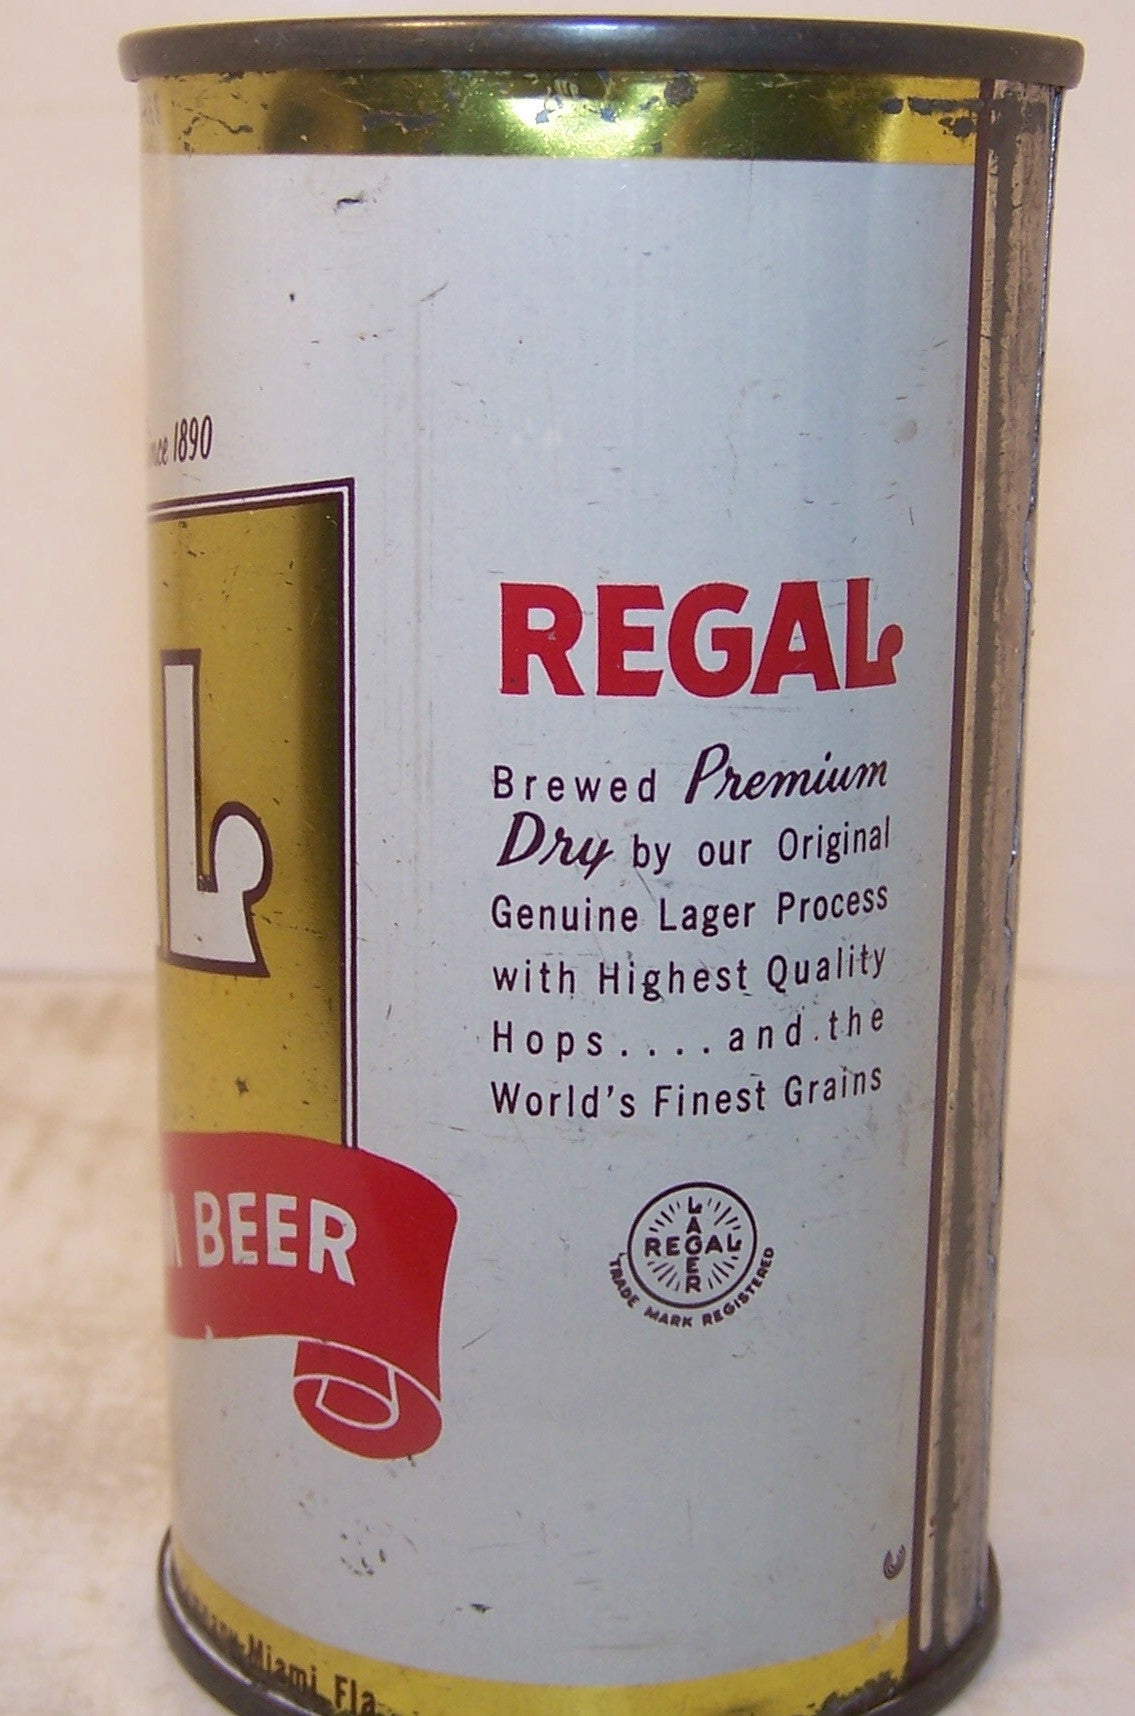 Regal Premium Beer, USBC 121-25, Grade 1-